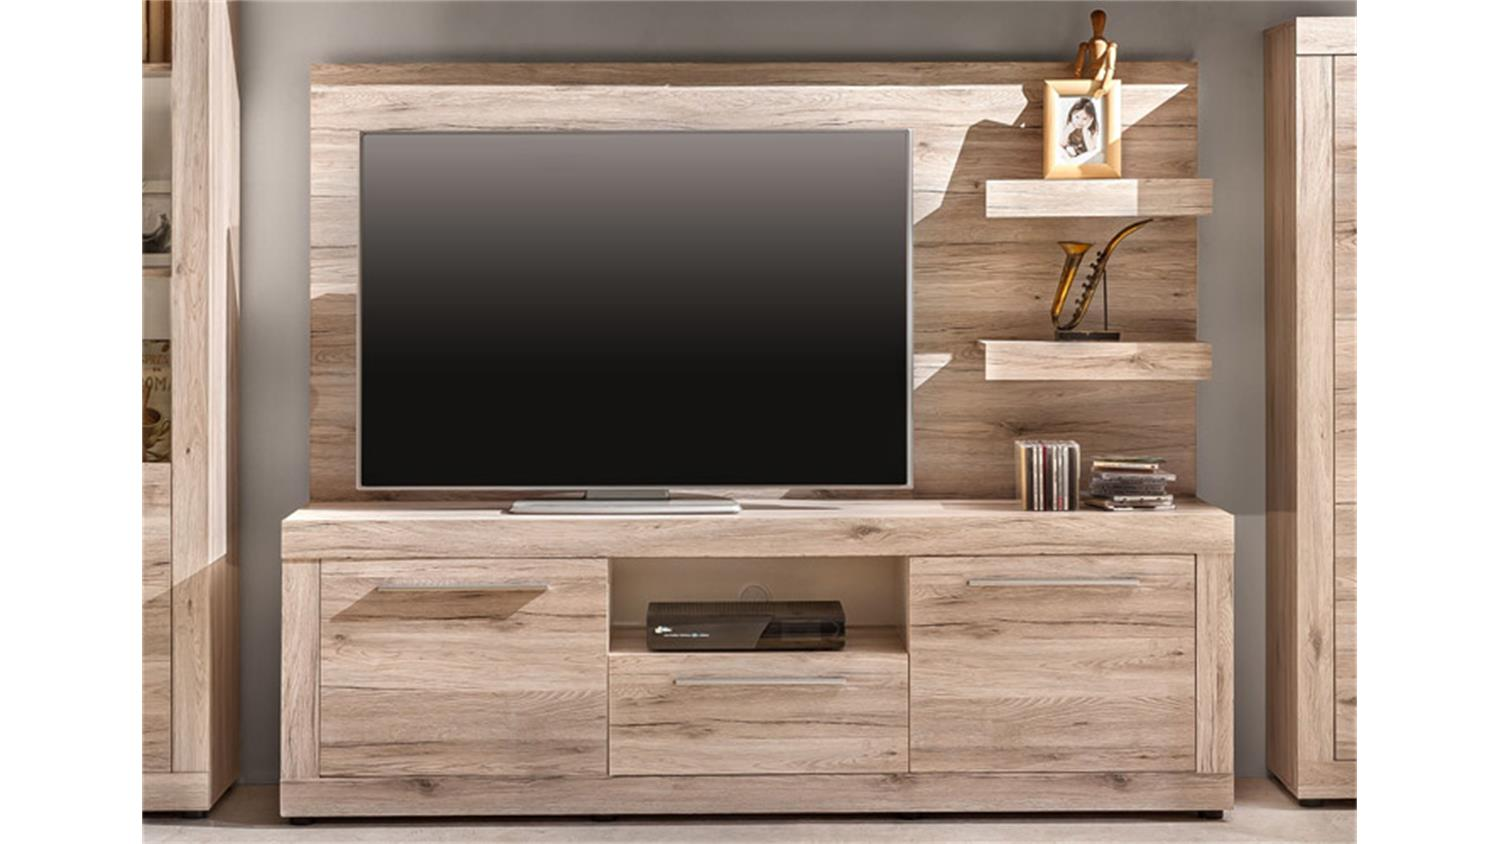 wandpaneel passat eiche sand f r das tv unterteil. Black Bedroom Furniture Sets. Home Design Ideas